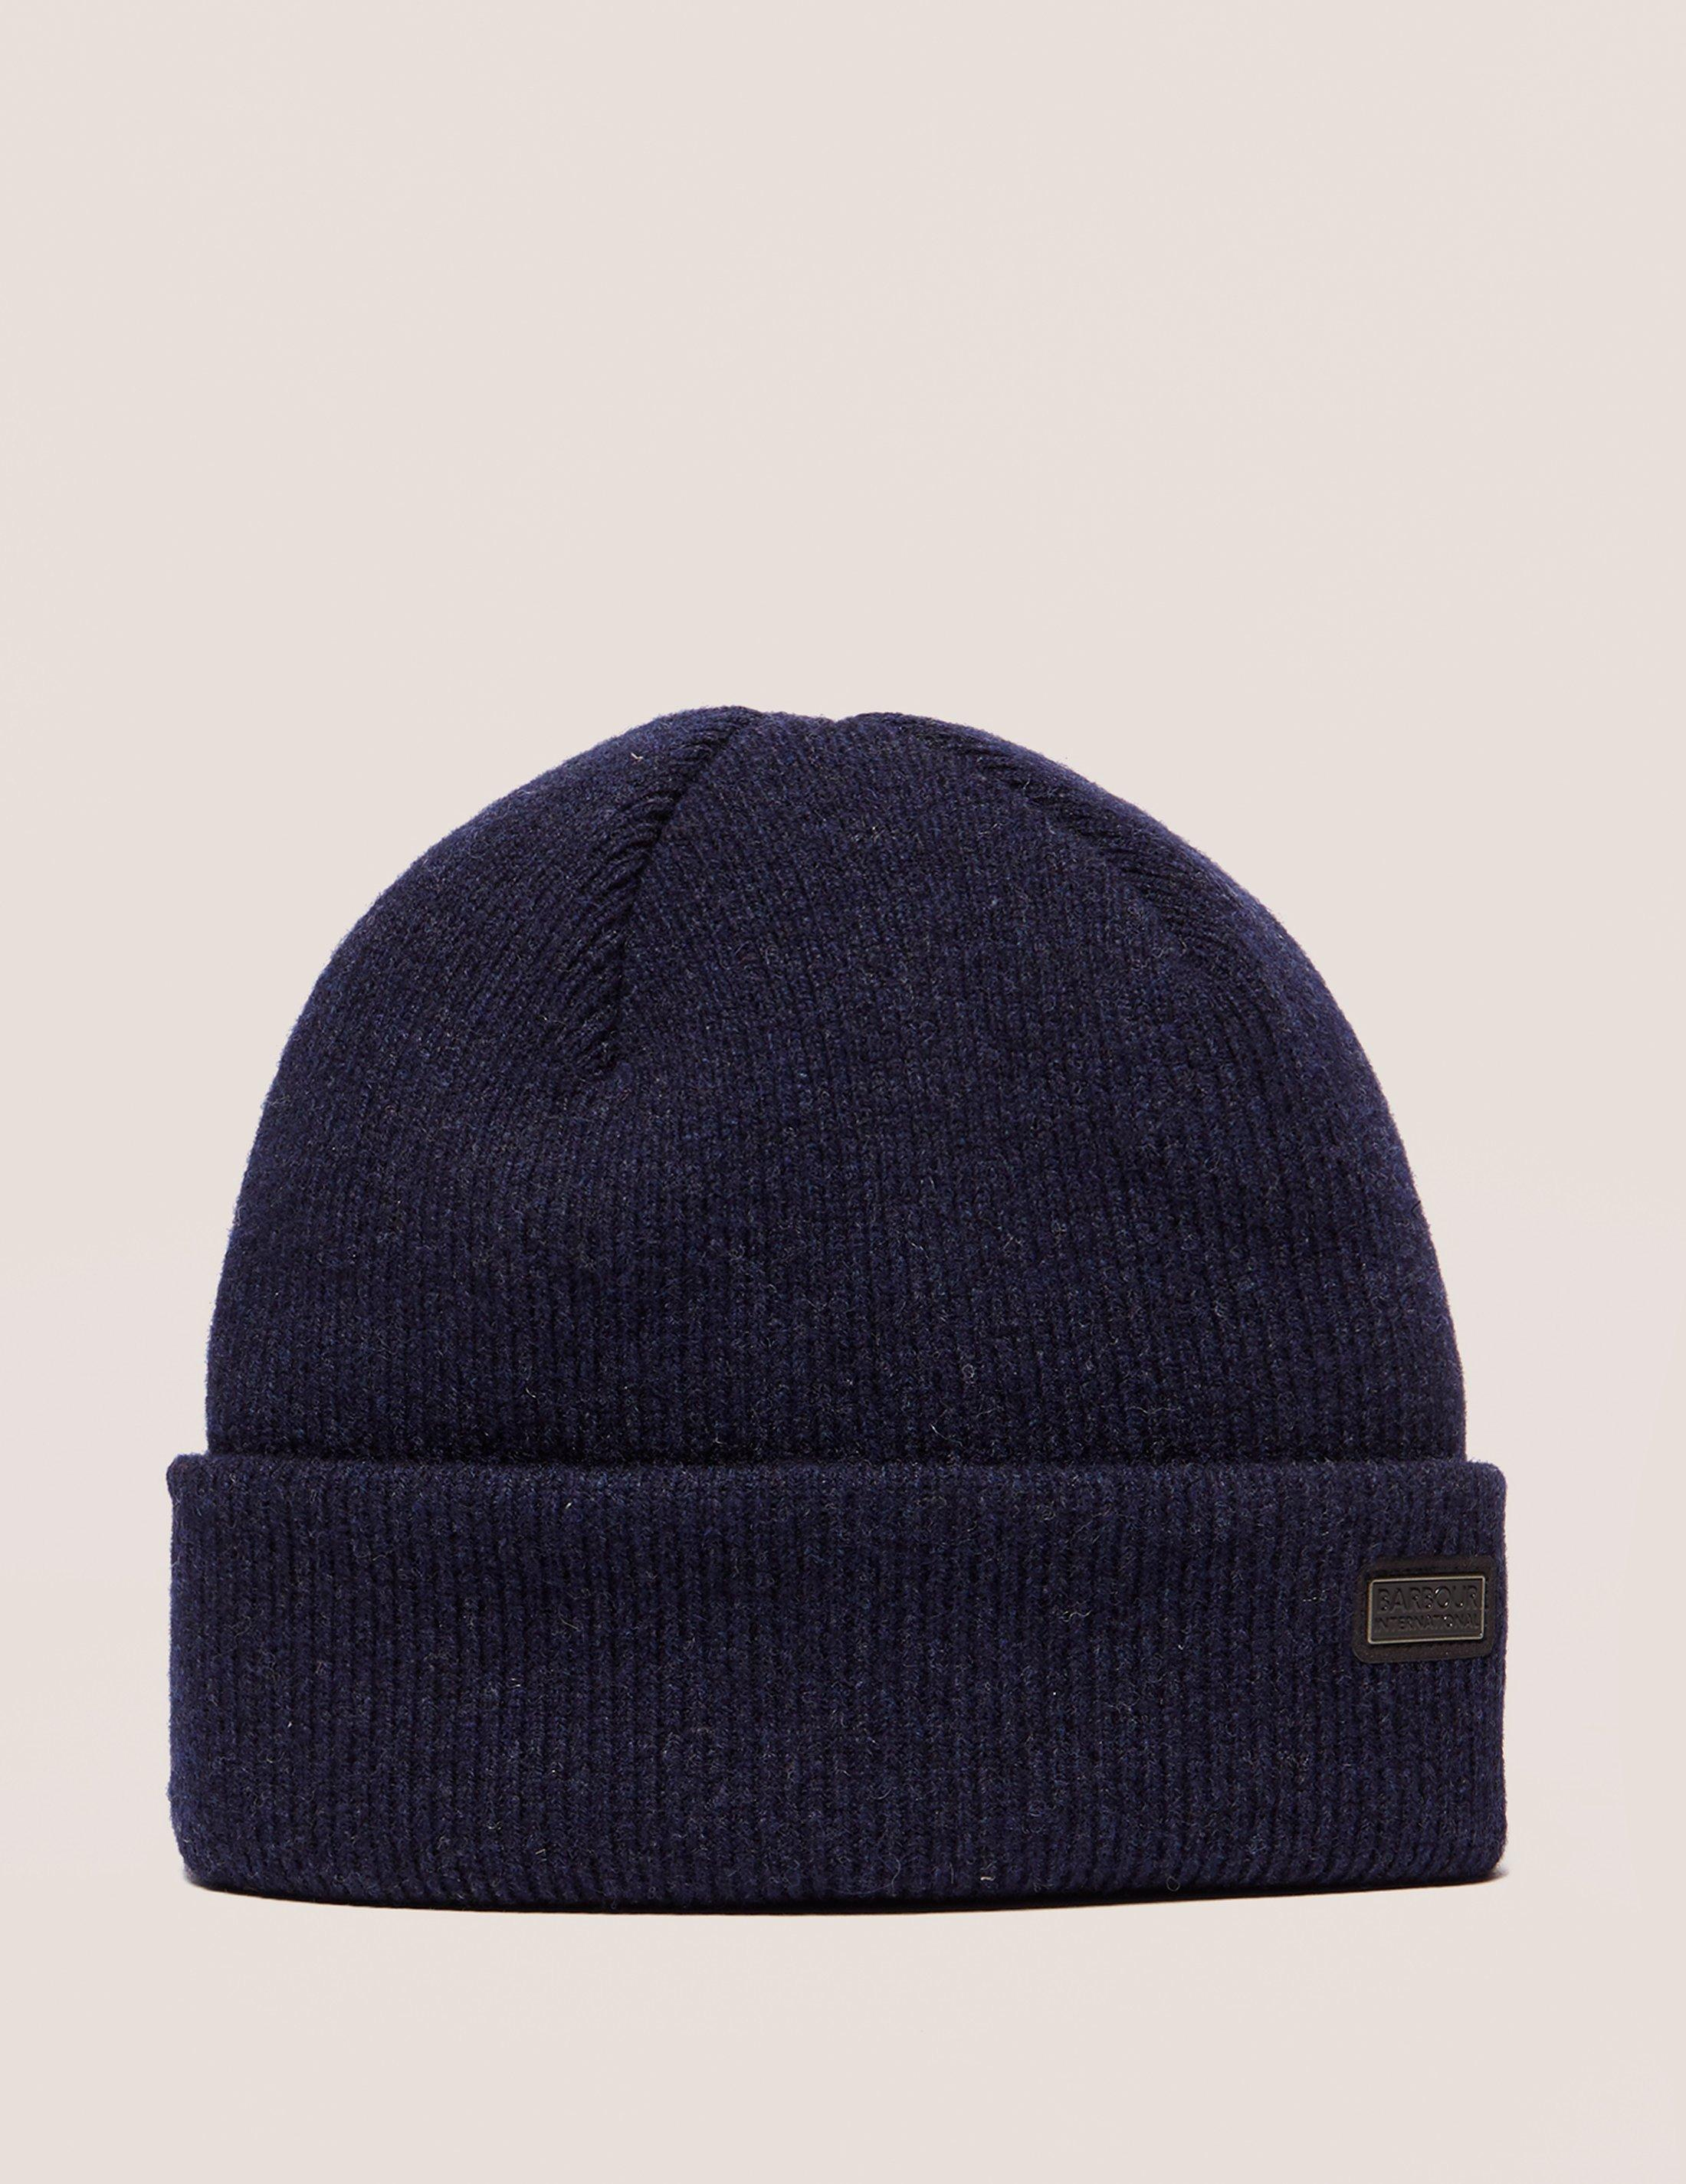 60d6ad609e9 Barbour Mens International Watch Knitted Beanie Navy Blue in Blue ...